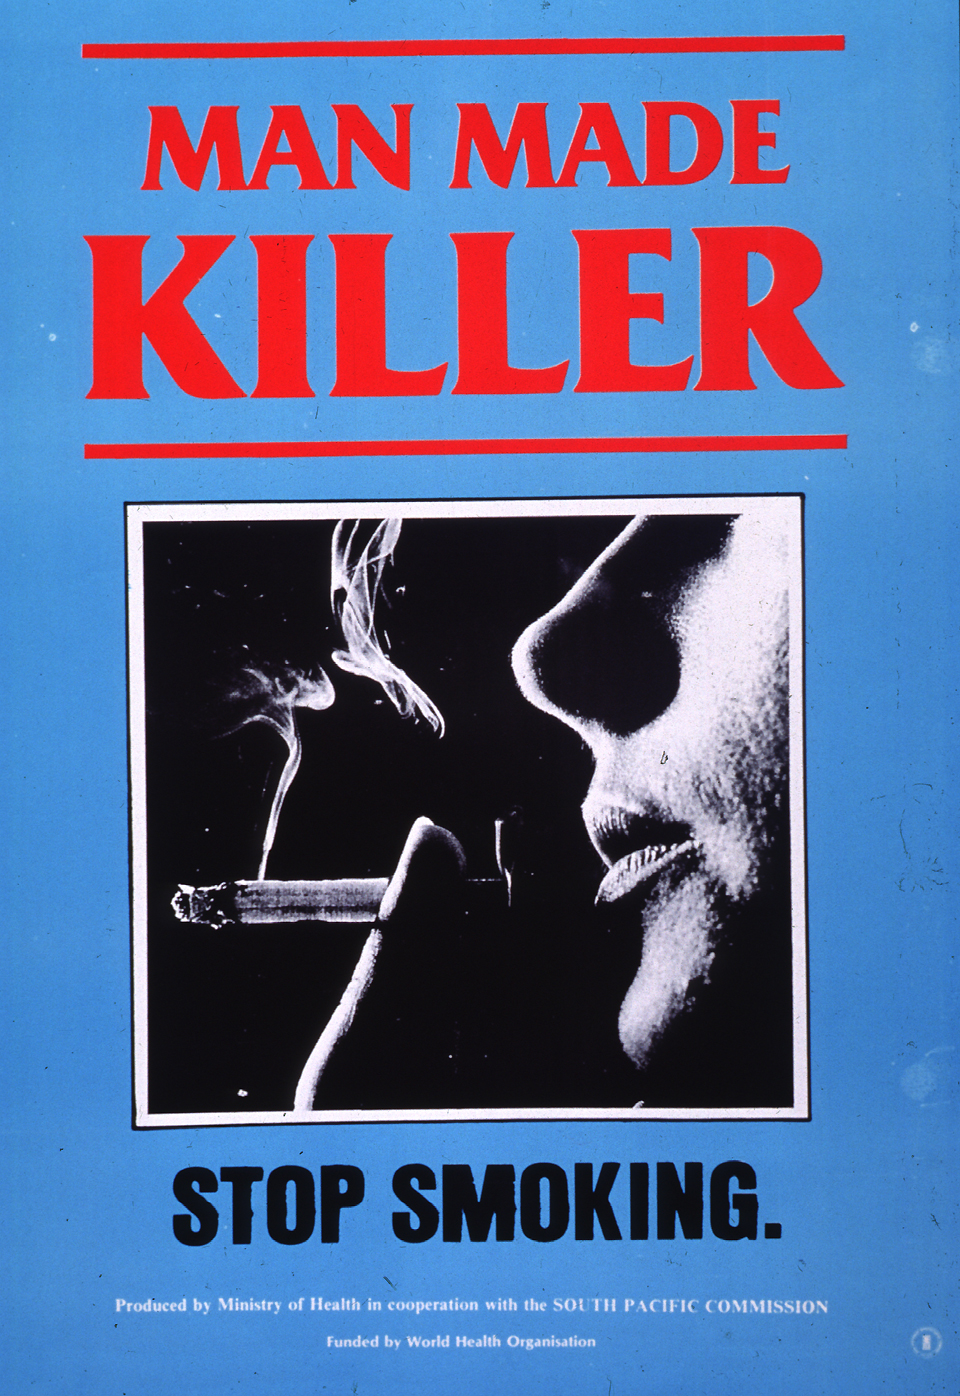 Man Made Killer. 1980s. Reproduced with permission of the World Health